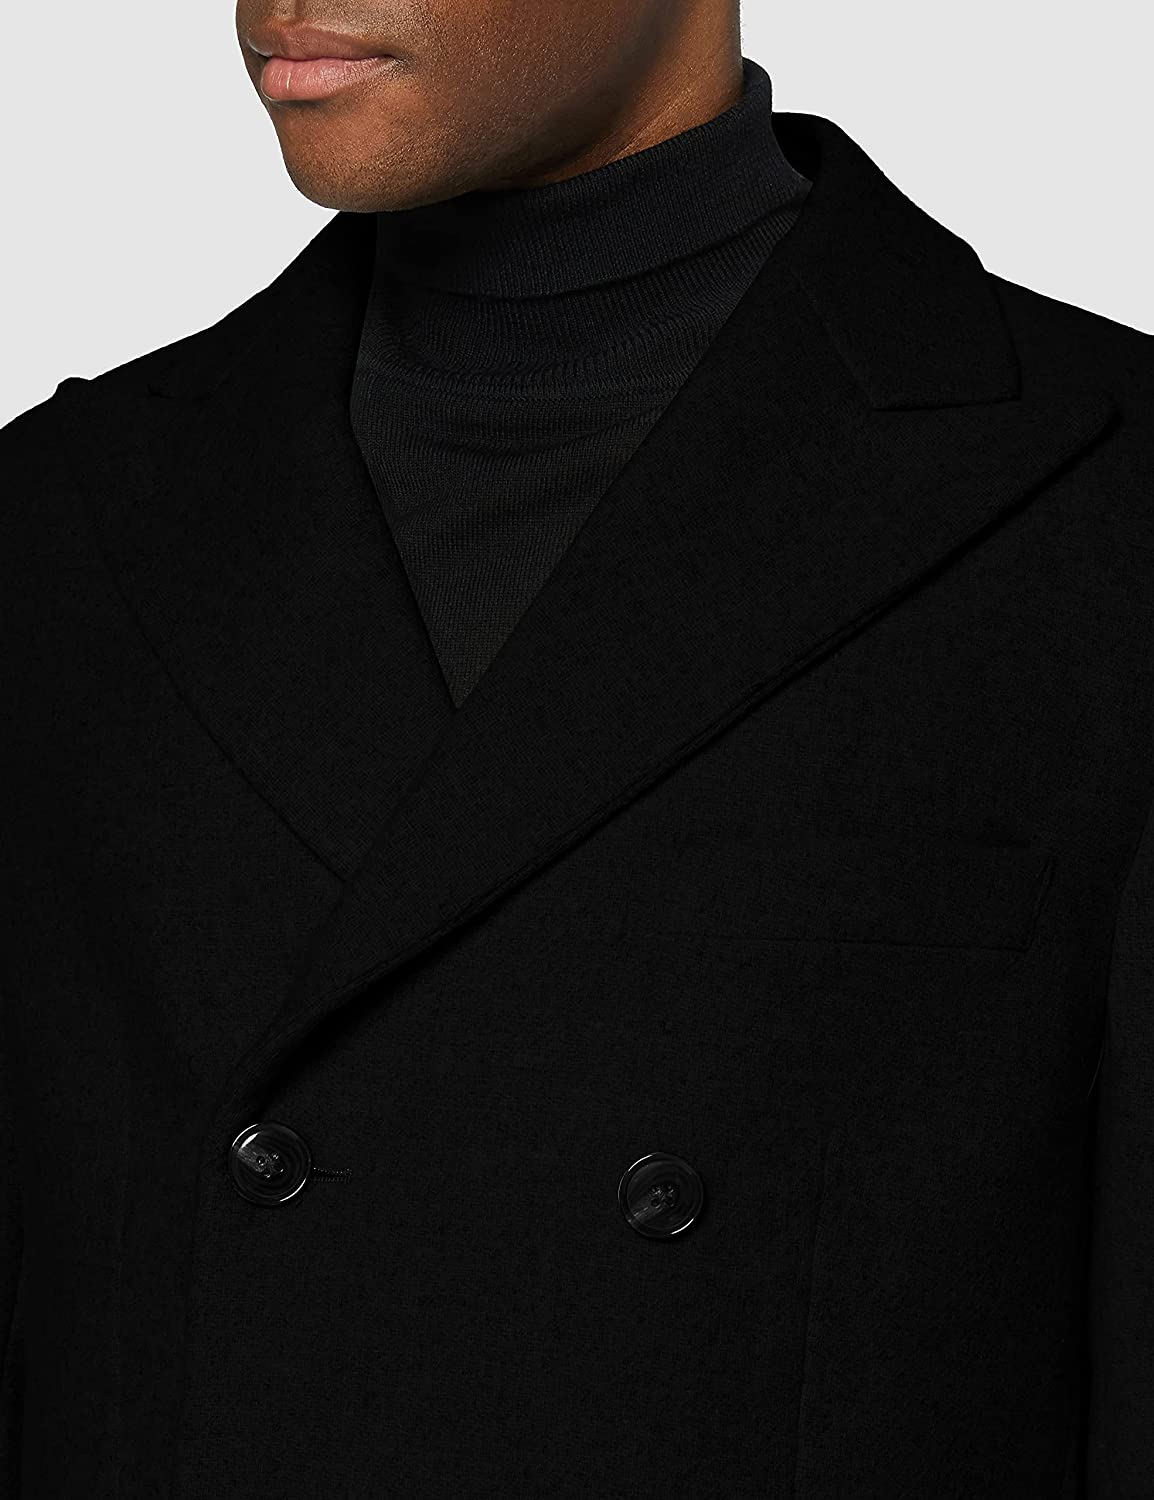 find. Men's Double Breasted Wool Mix Overcoat